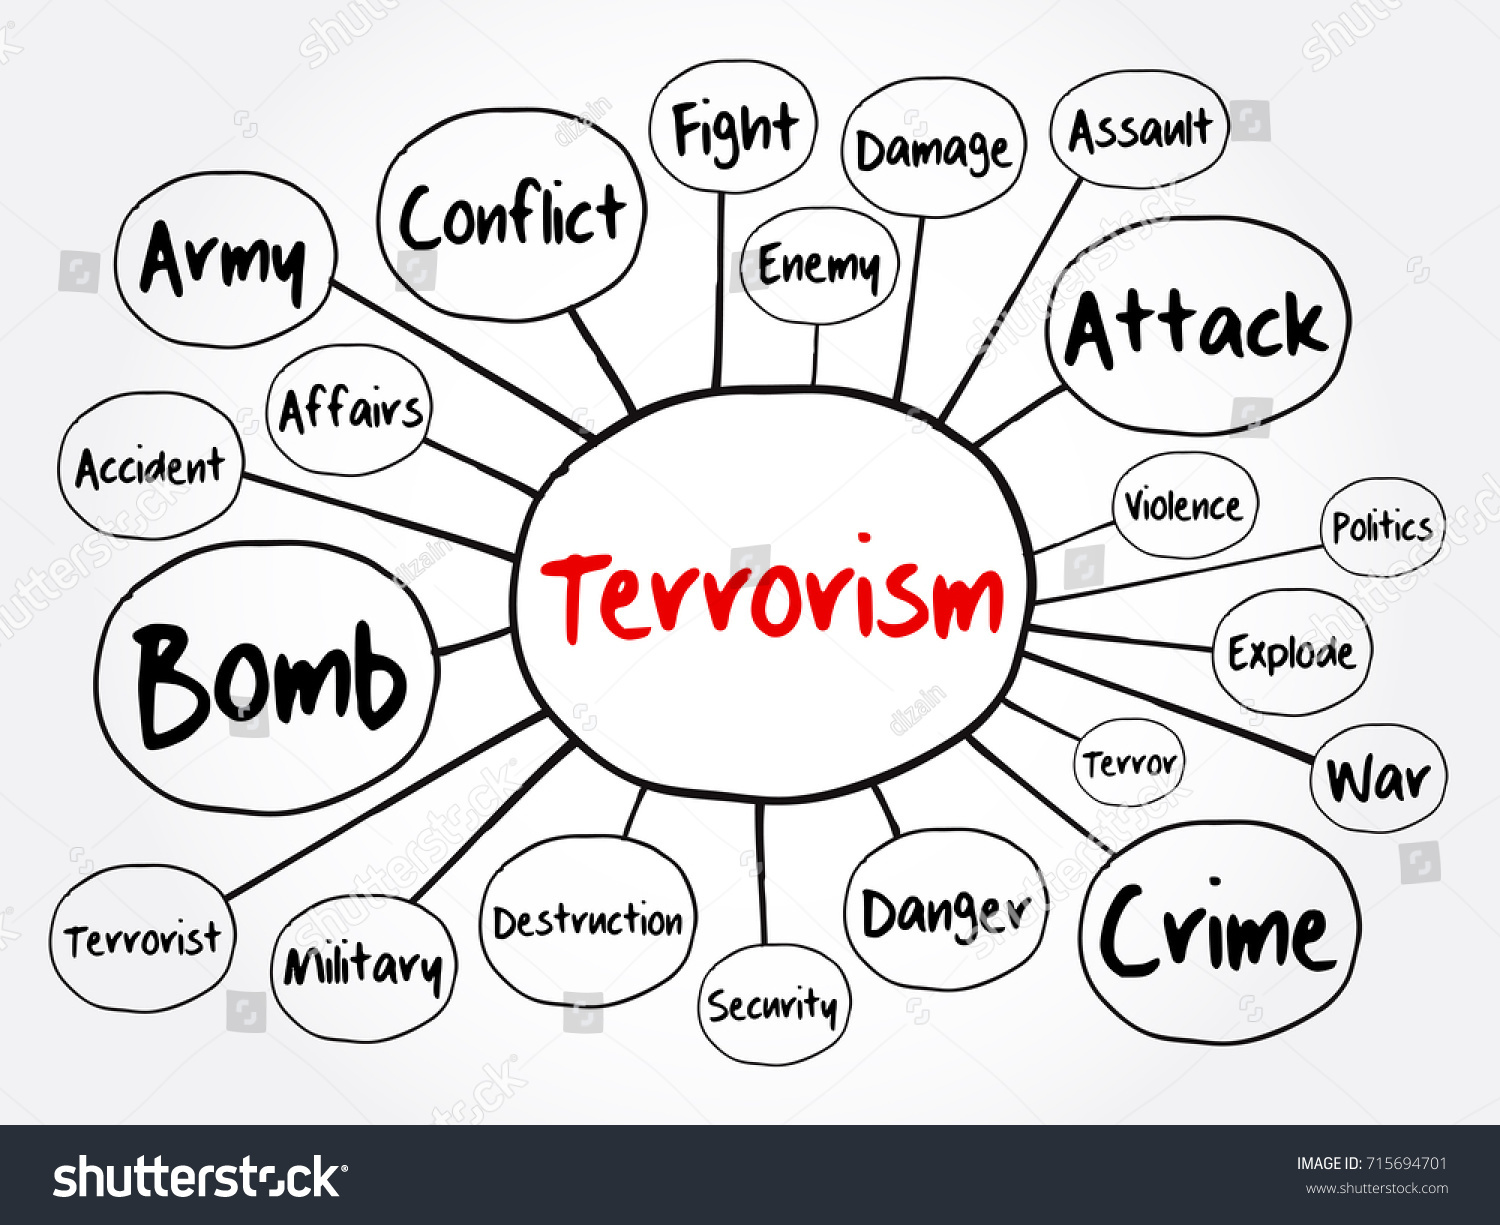 Terrorism mind map flowchart concept presentations stock vector terrorism mind map flowchart concept for presentations and reports nvjuhfo Images